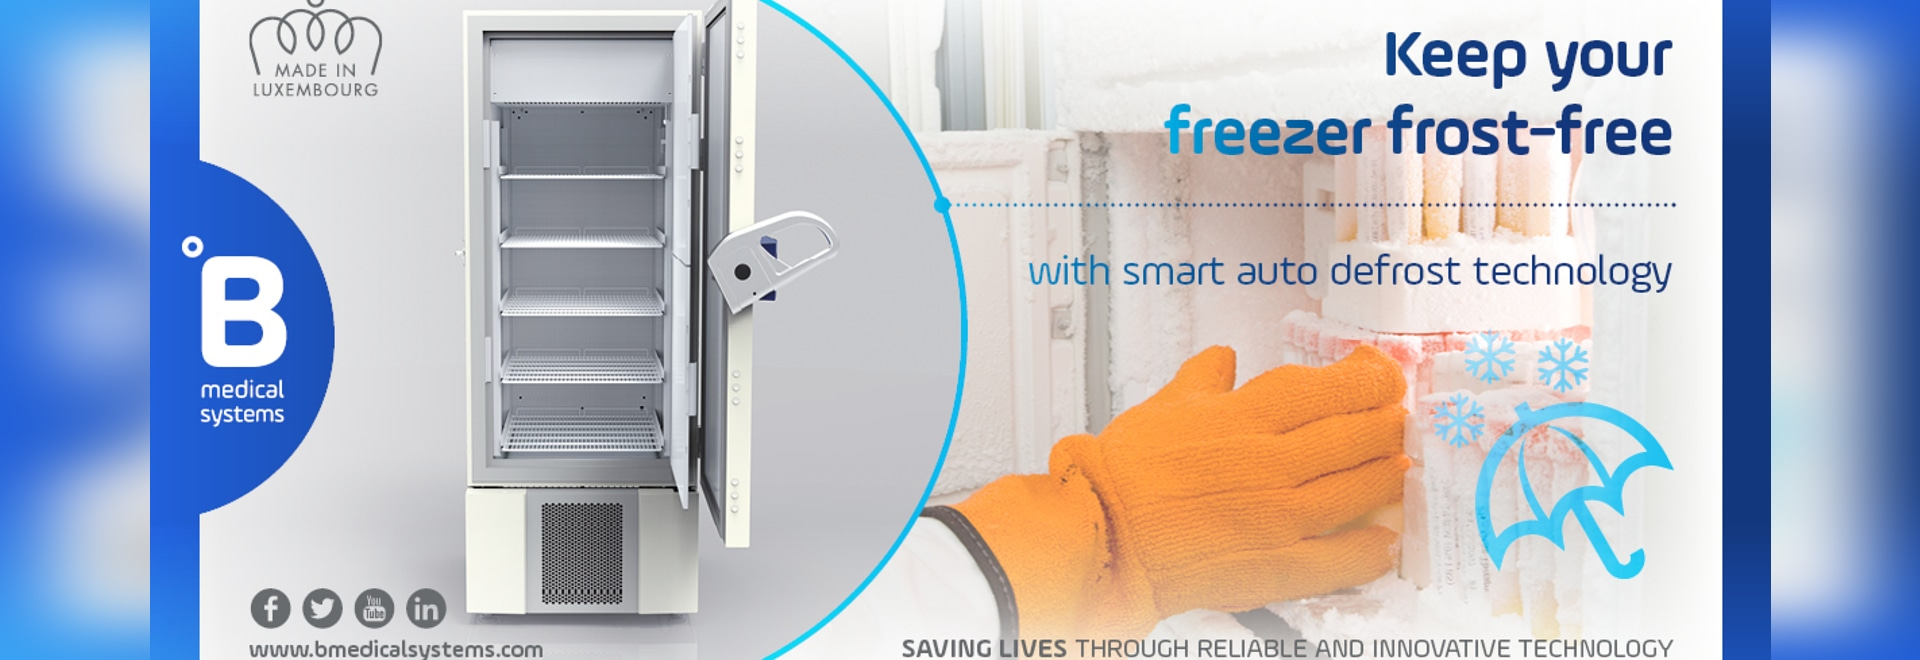 Smart technology to keep your freezers free of frost